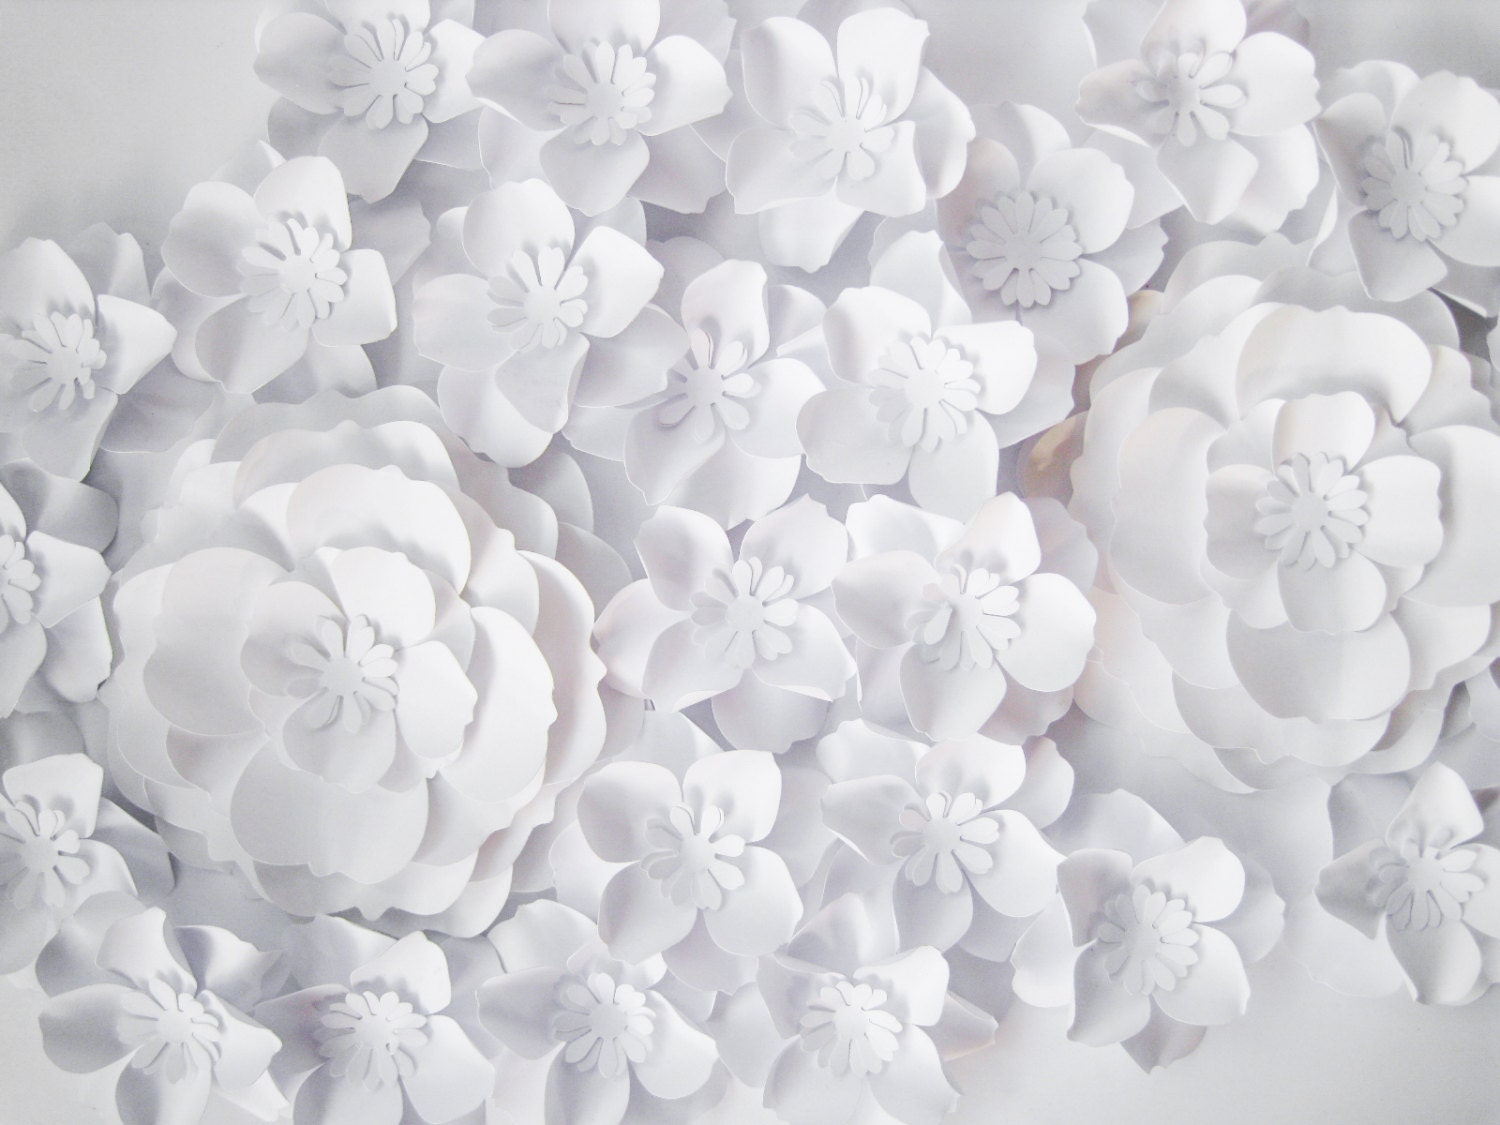 White Paper Flower Geccetackletarts